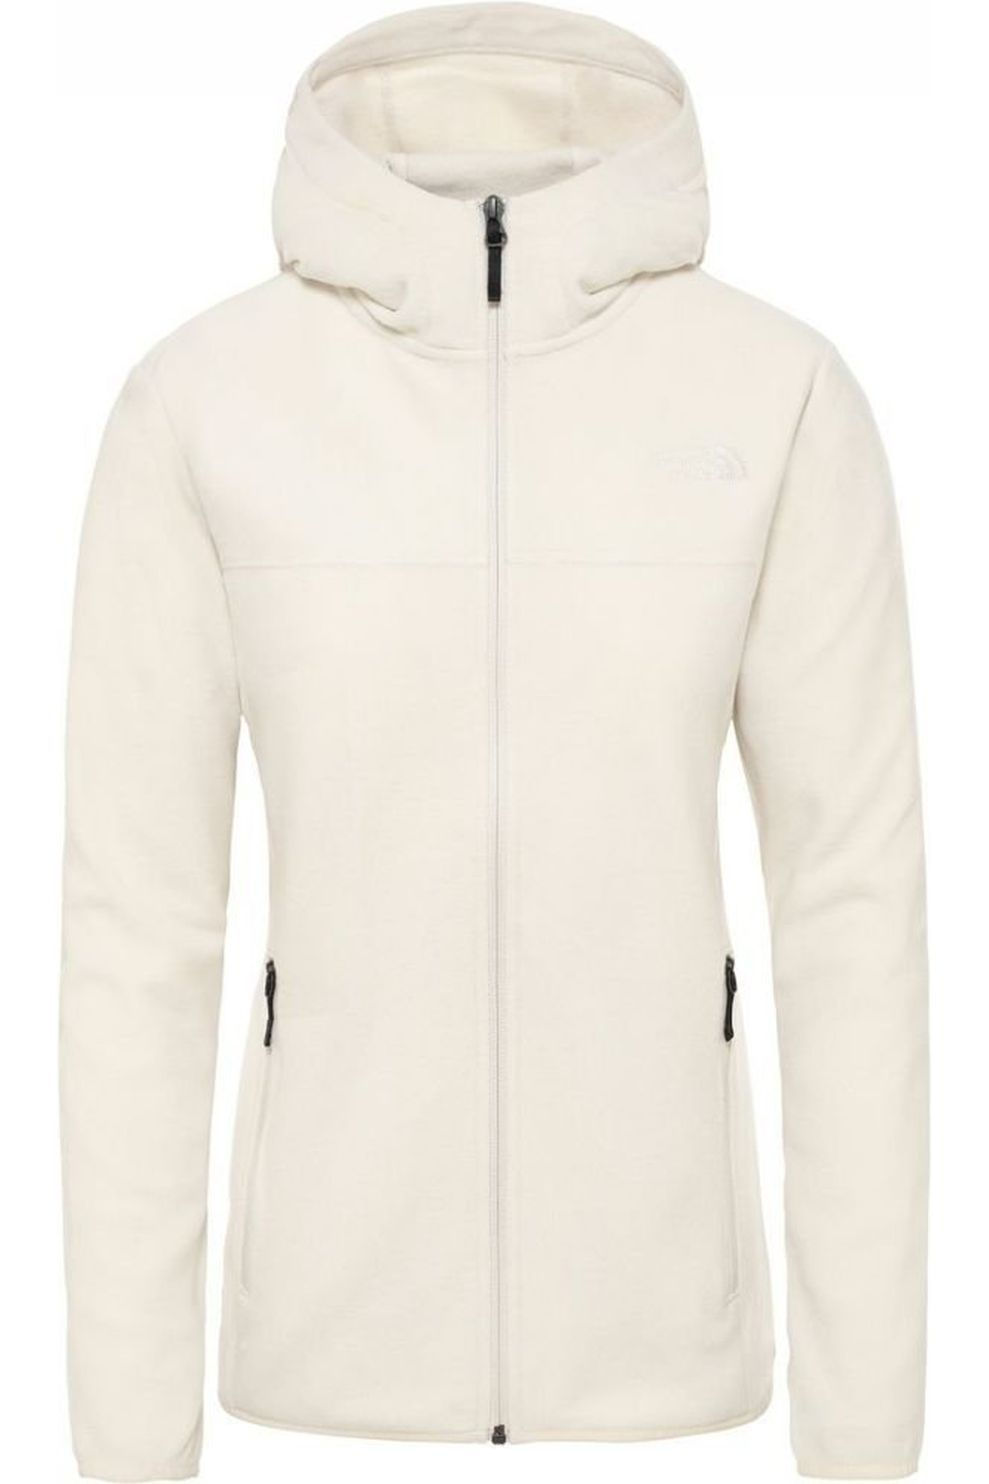 The North Face Fleece Tka Glacier Full Zip Hoodie voor dames – Wit – Maat: L